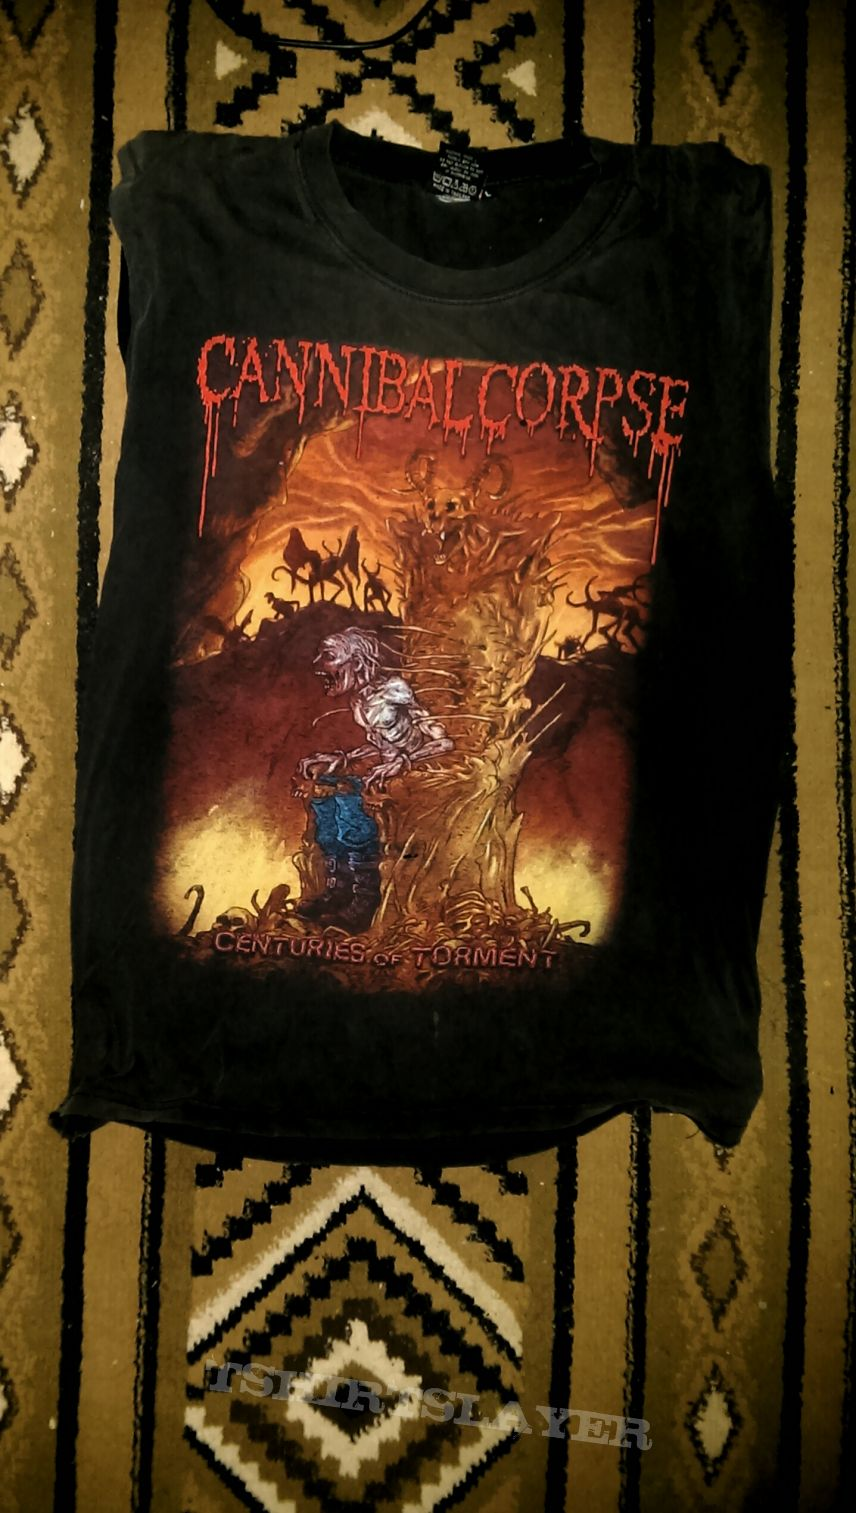 Cannibal corpse - centuries of torment